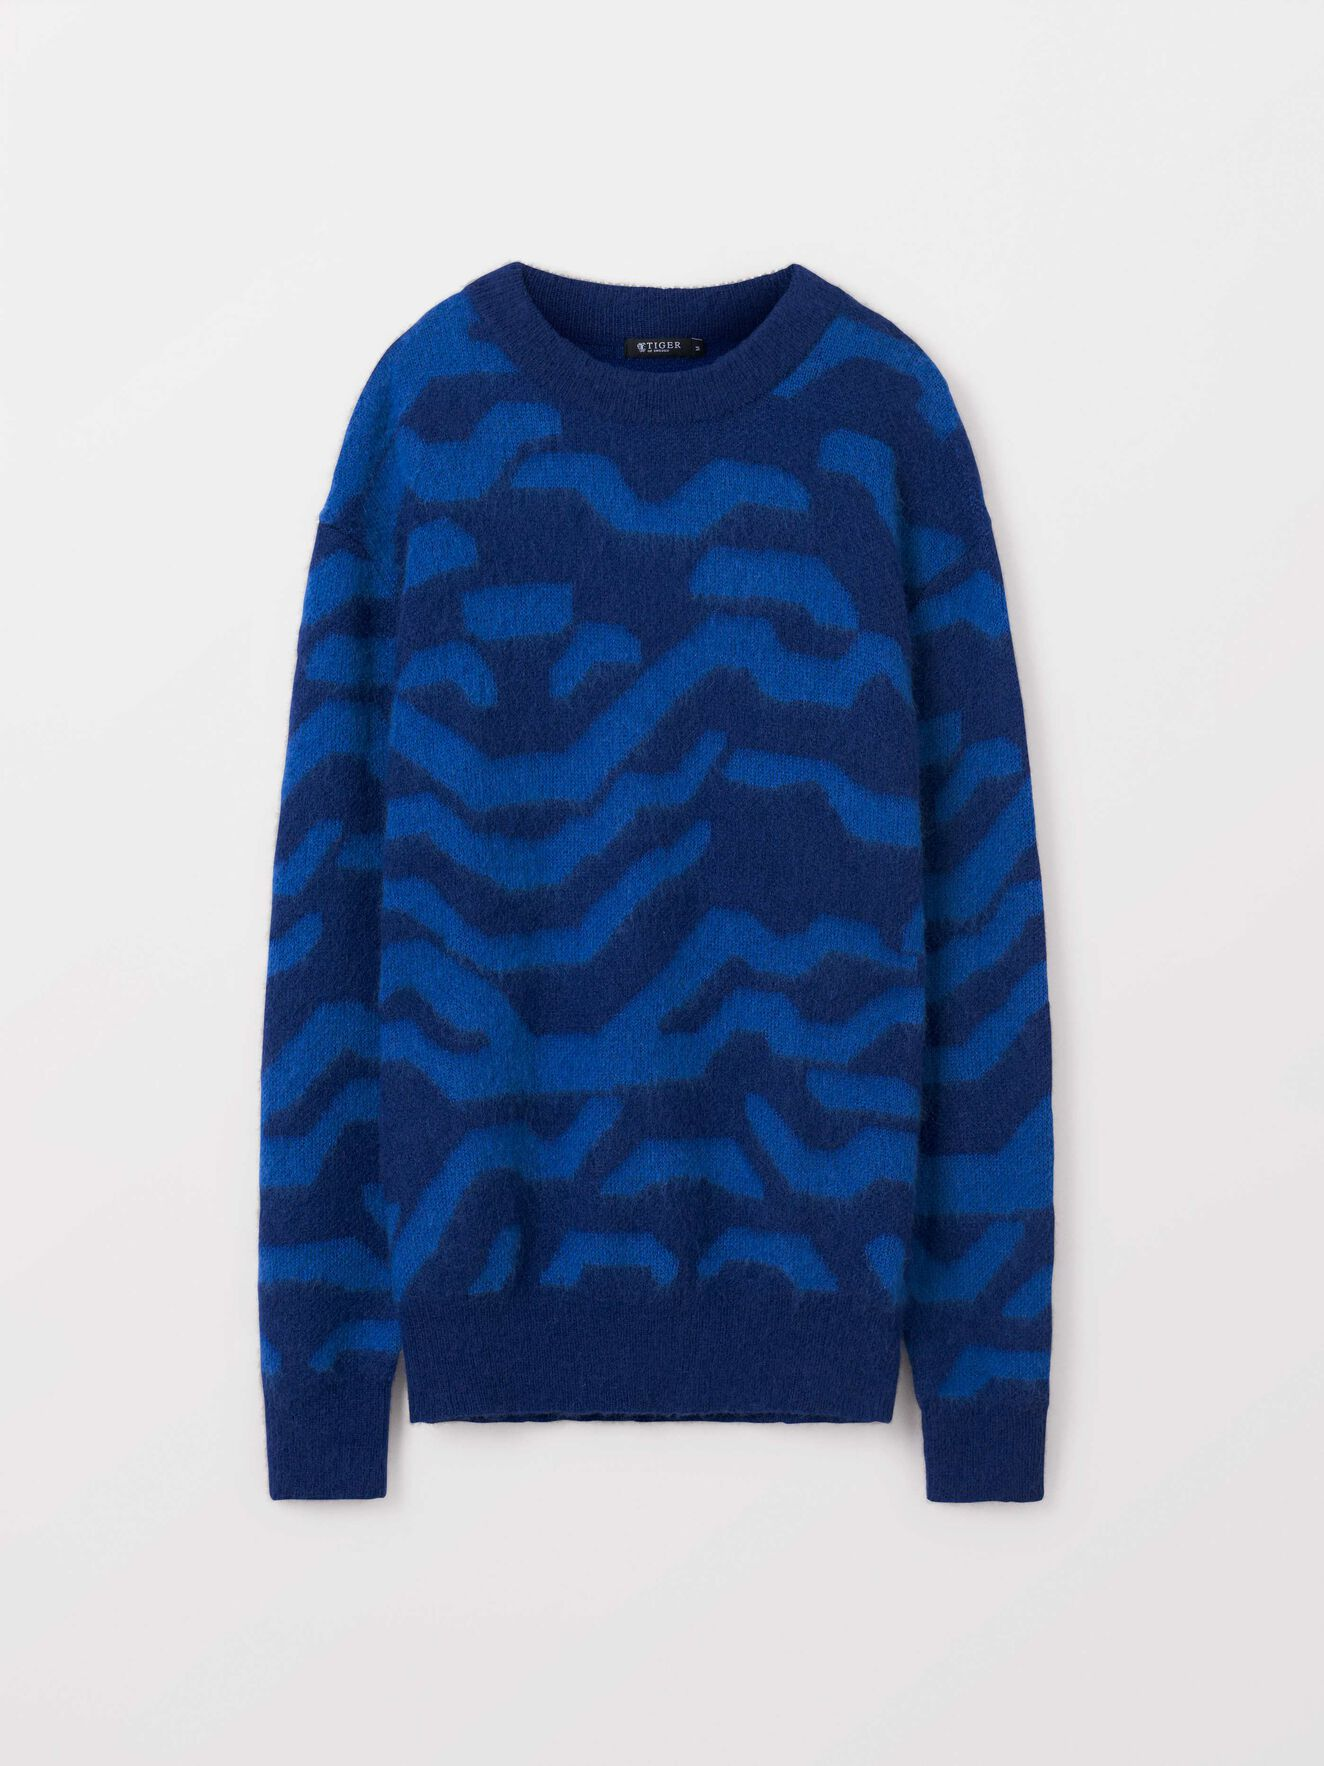 Nocks Pullover in Light Ink from Tiger of Sweden